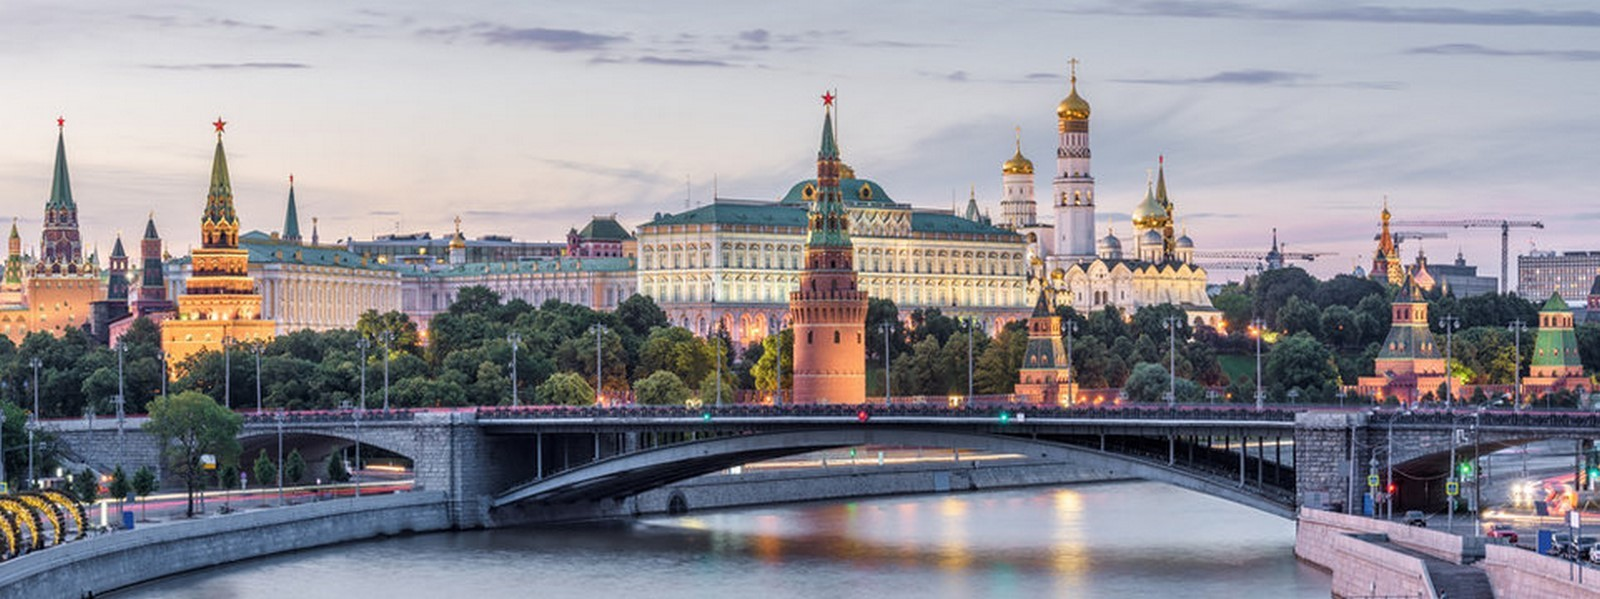 10 Reasons why Architects should visit Russia - Sheet2